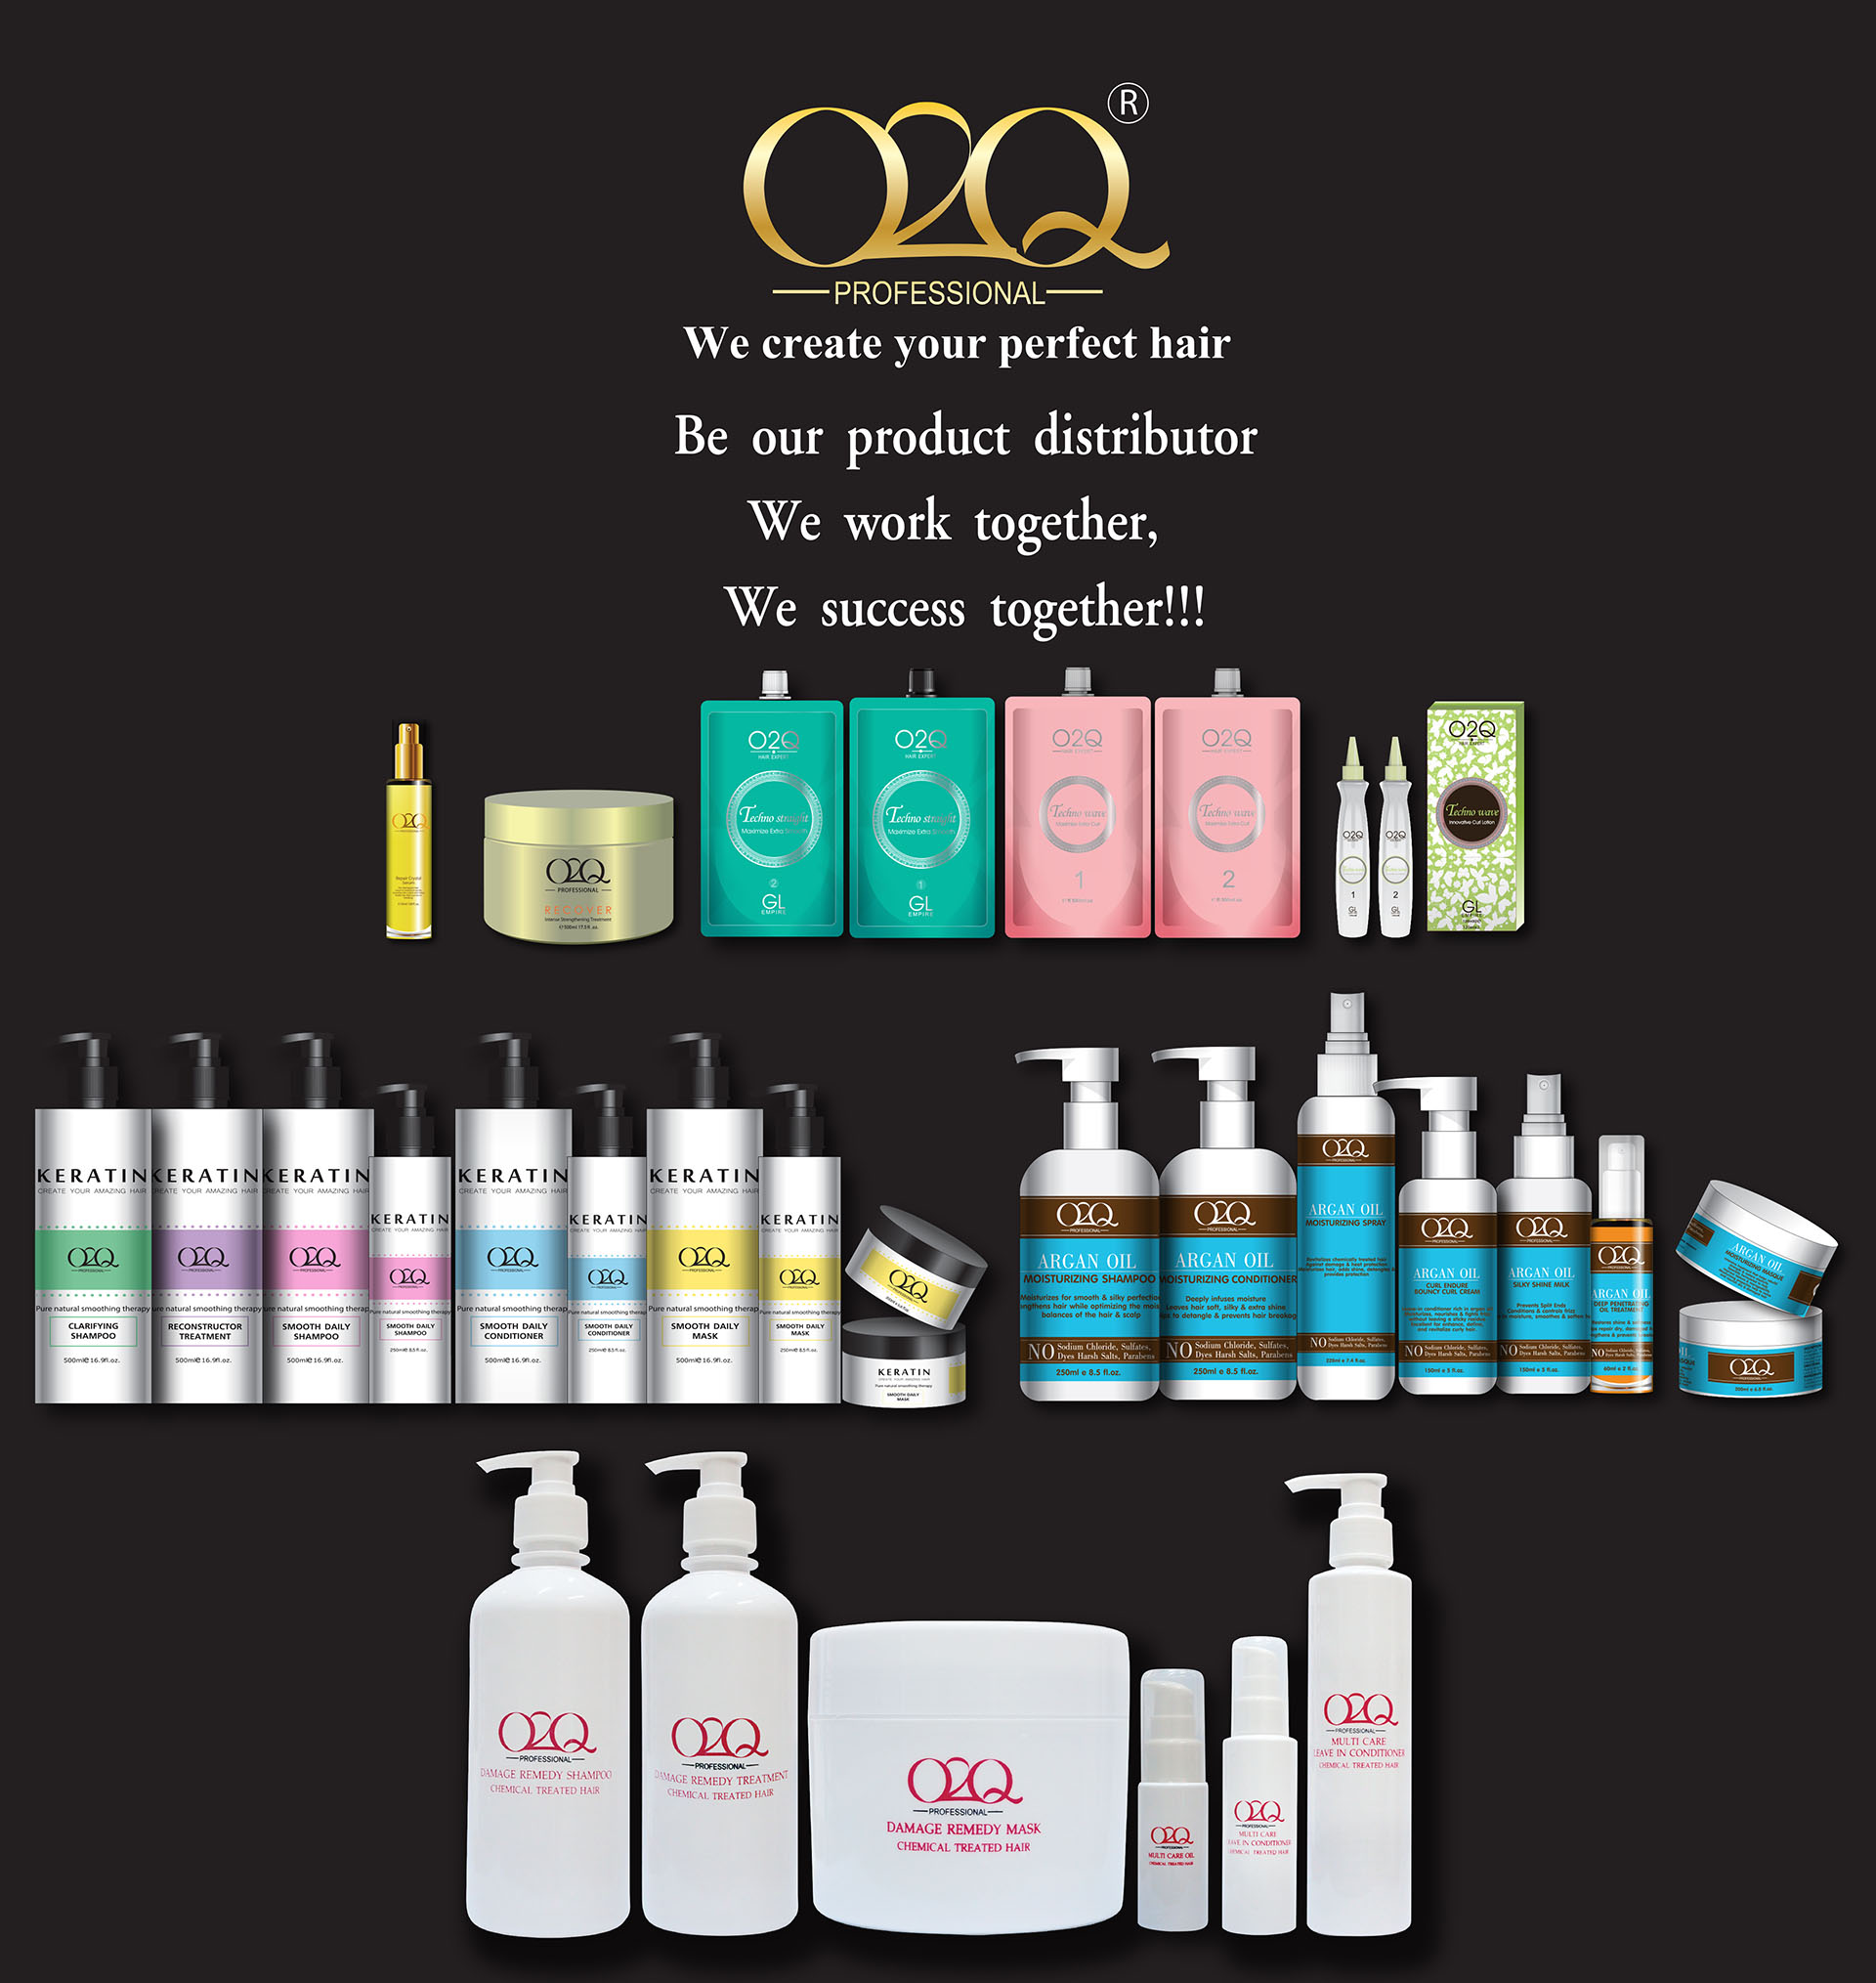 be our product distributor969(w)x1024(h)ภาษาอังก